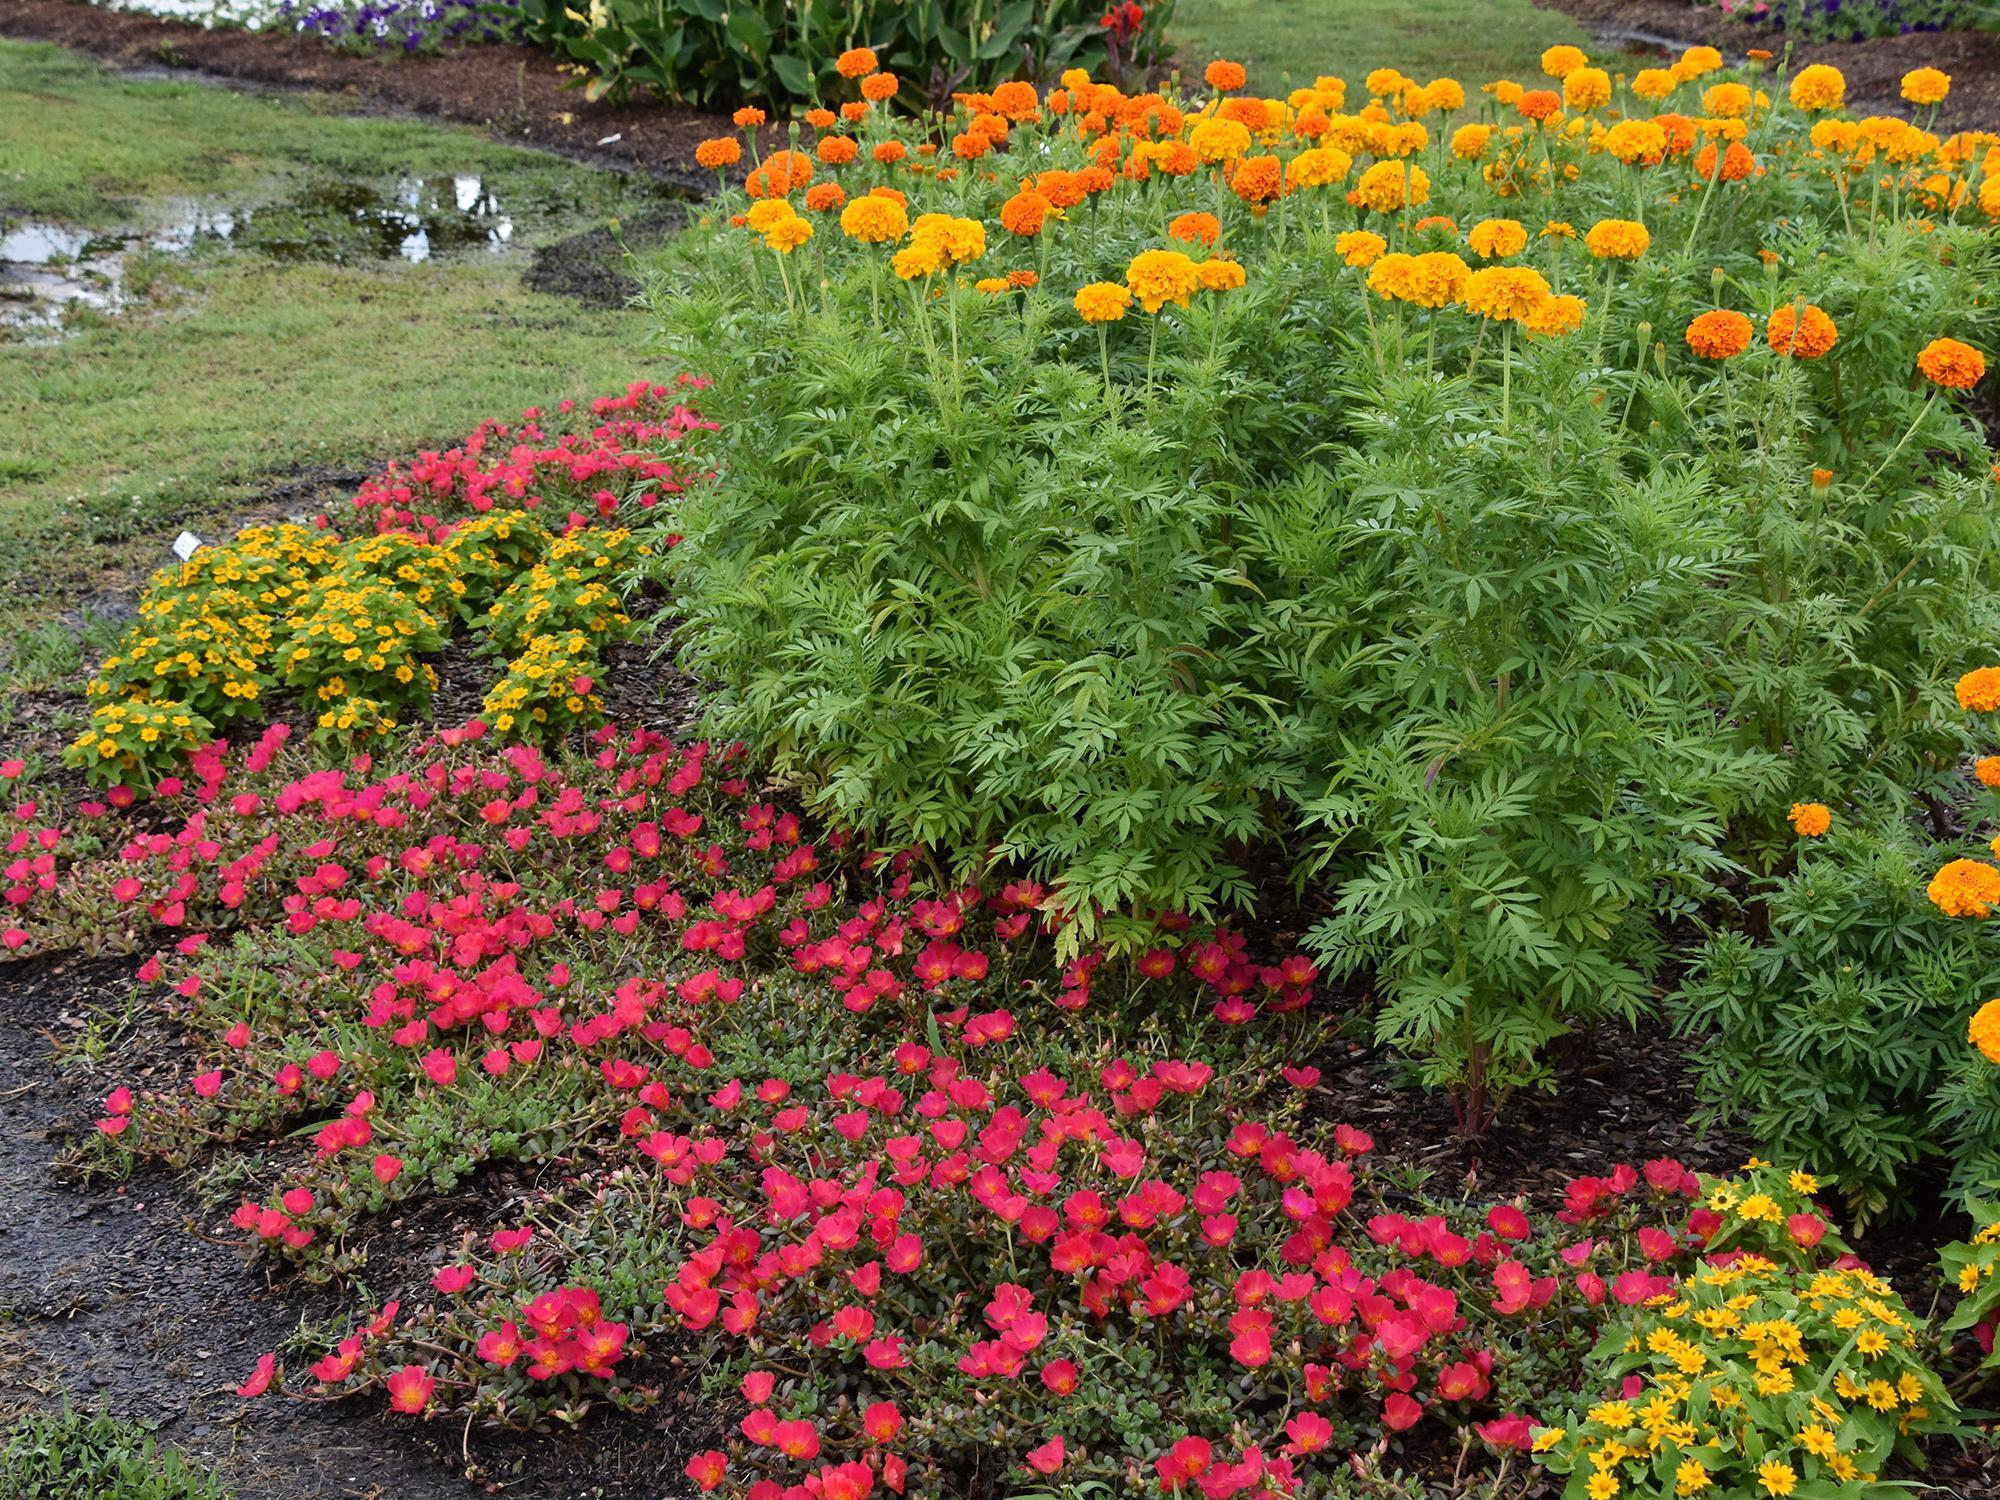 Also called the African marigold, various series of the American marigold can range from 15 inches to 3 feet in height. (Photo by MSU Extension Service/Gary Bachman)